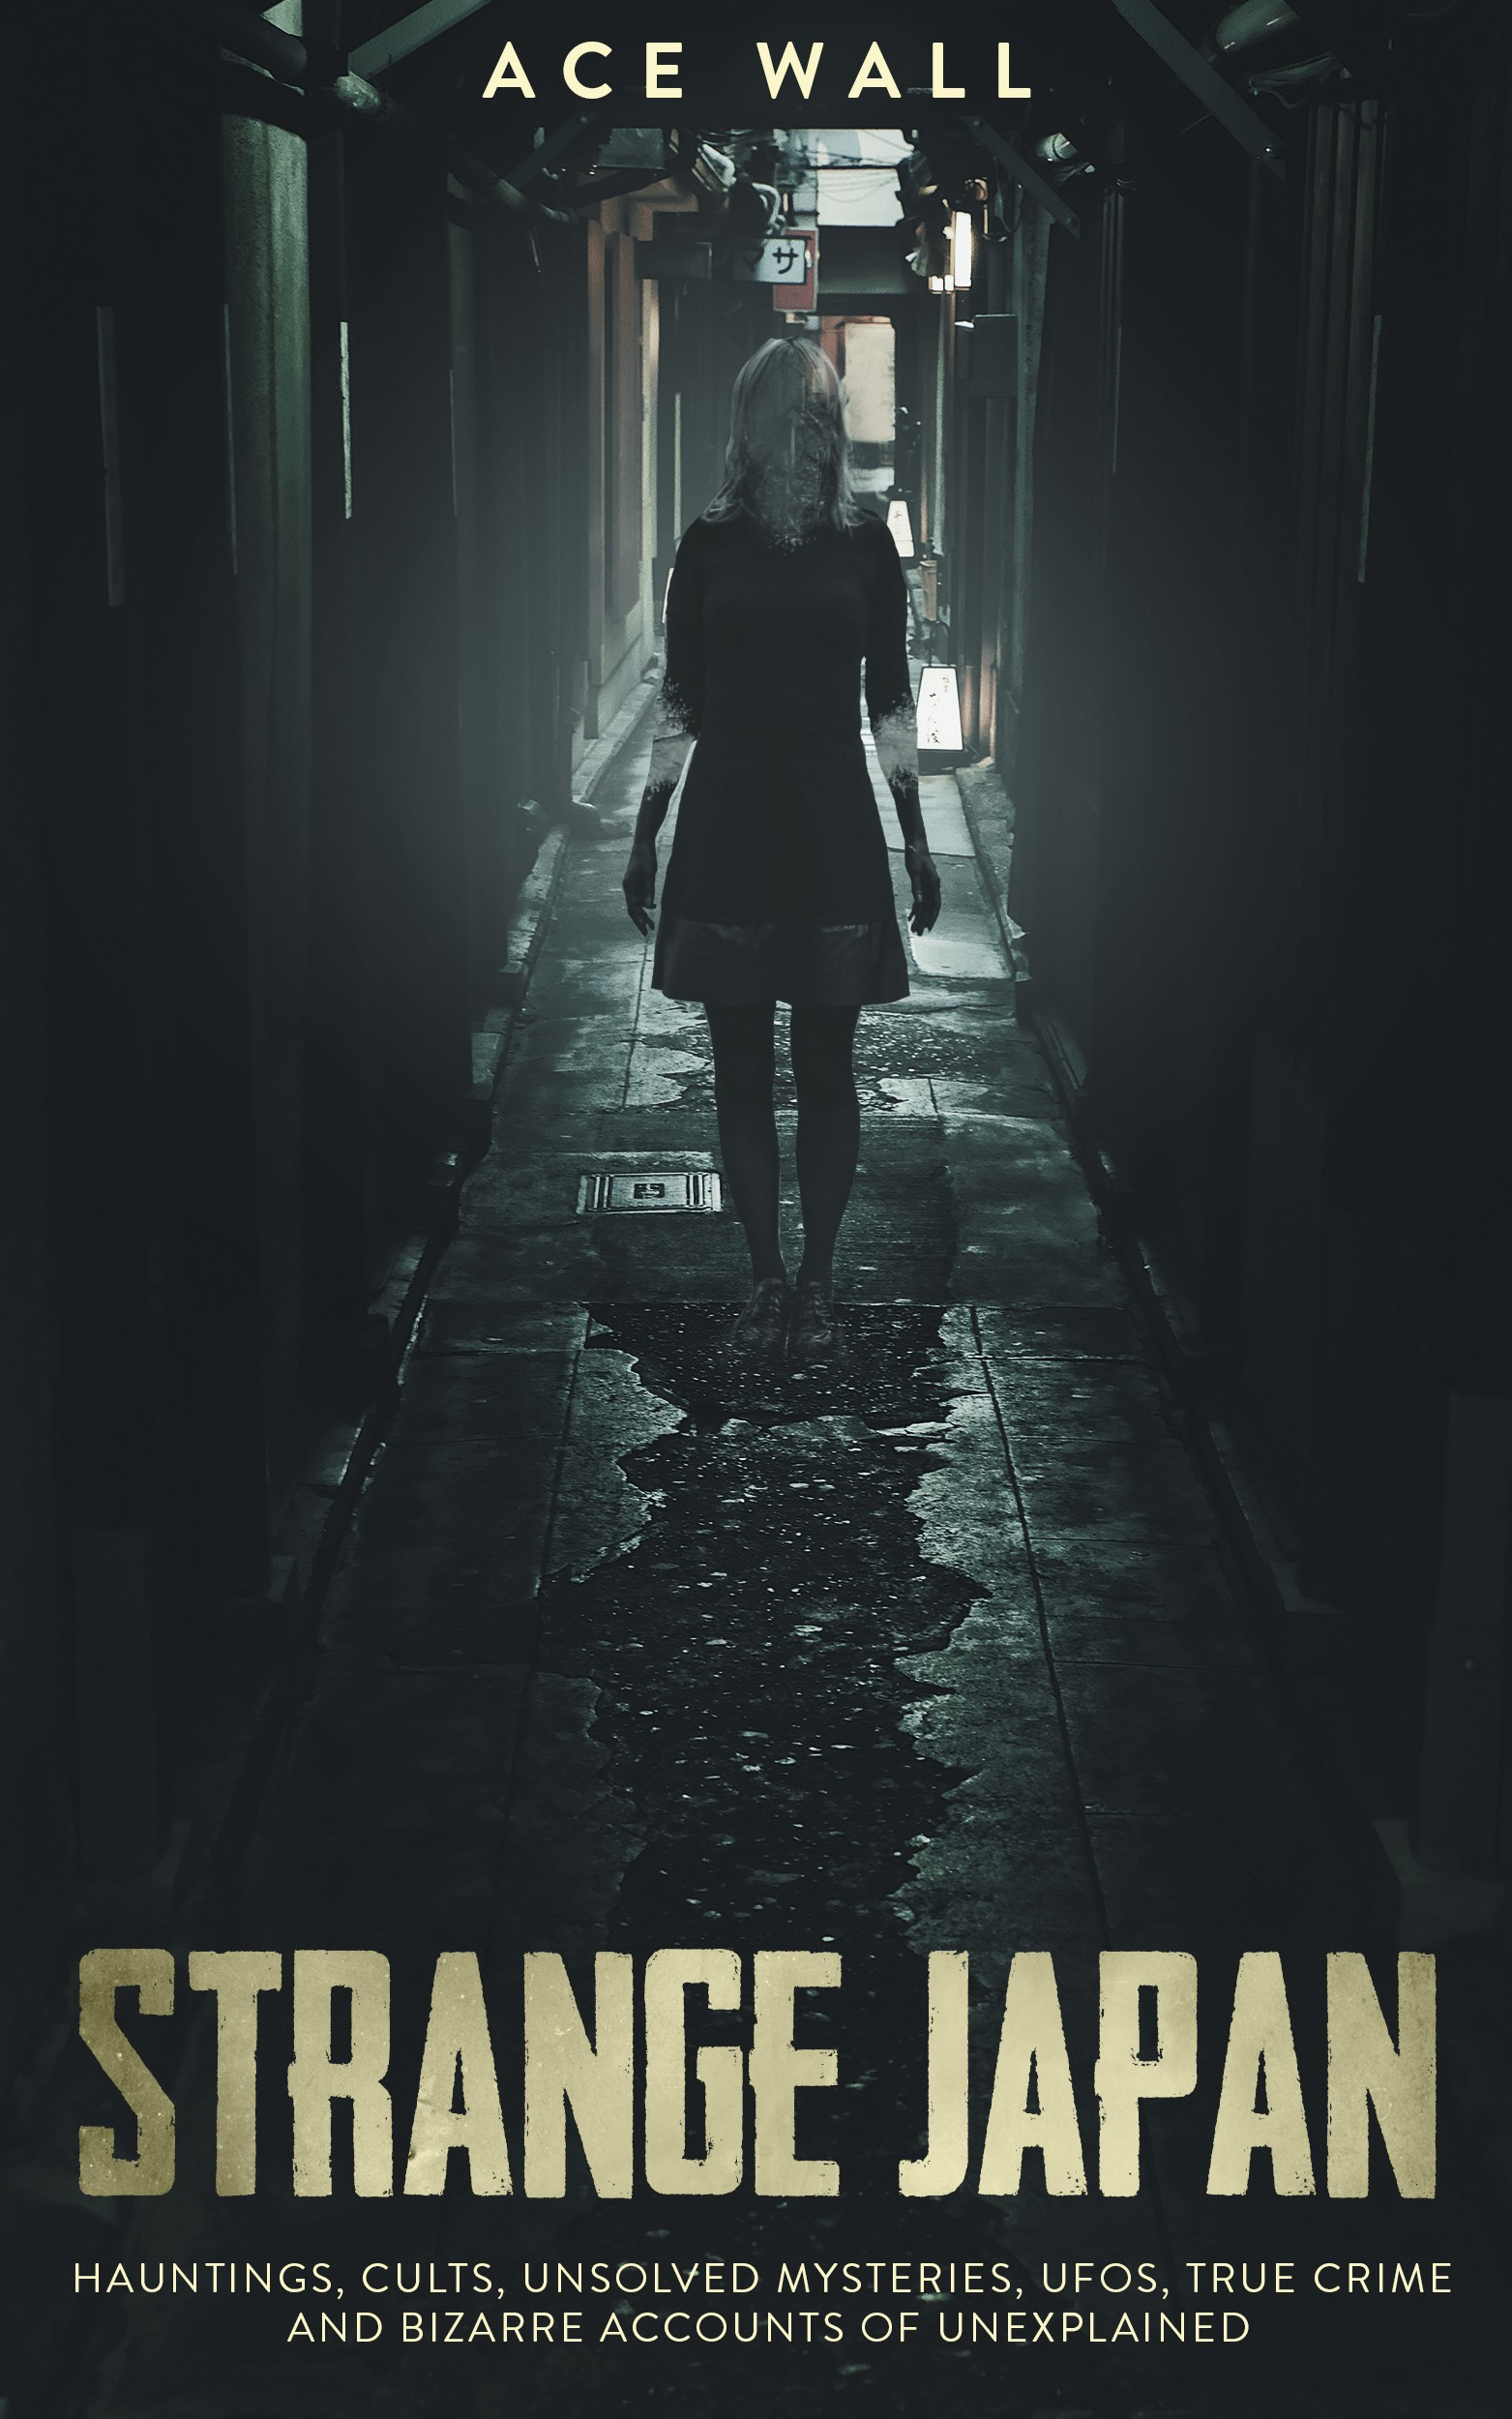 Book cover for Japan based paranormal and True Crime stories